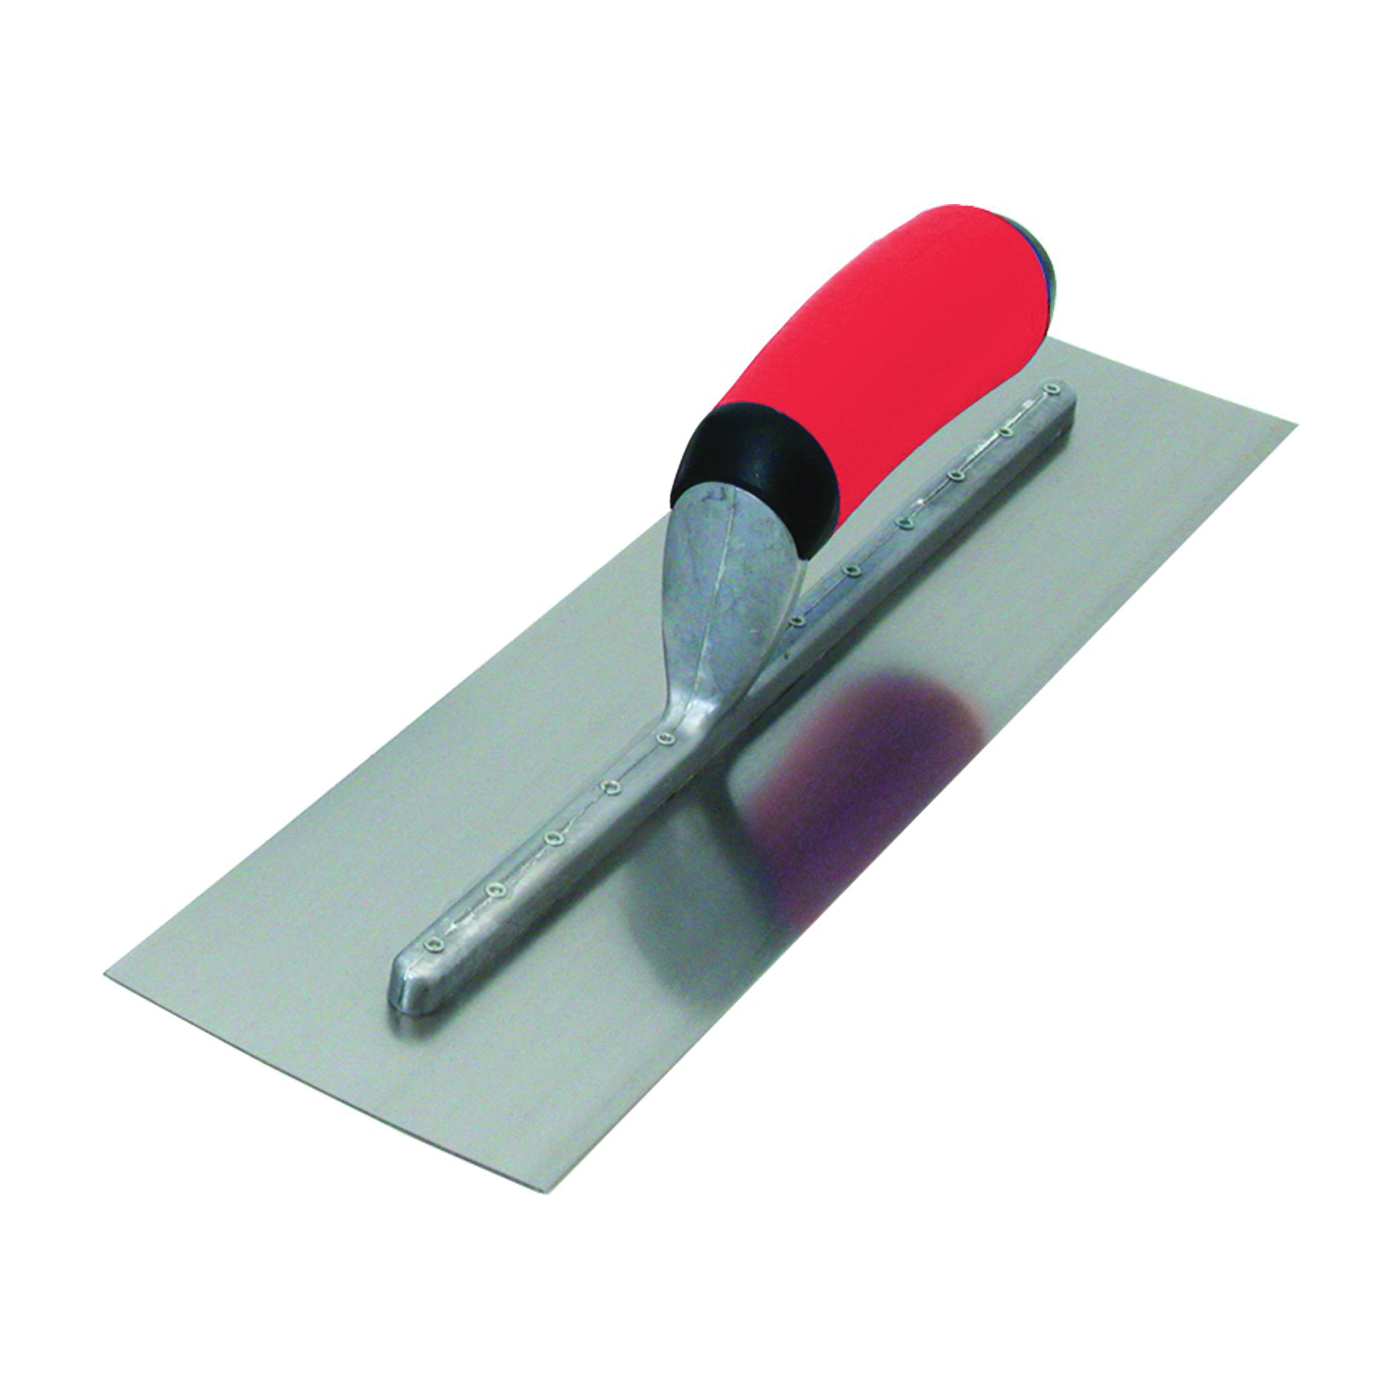 Picture of Marshalltown FT374R Finishing Trowel, 16 in L Blade, 4 in W Blade, Steel Blade, Comfort Grip, Curved Handle